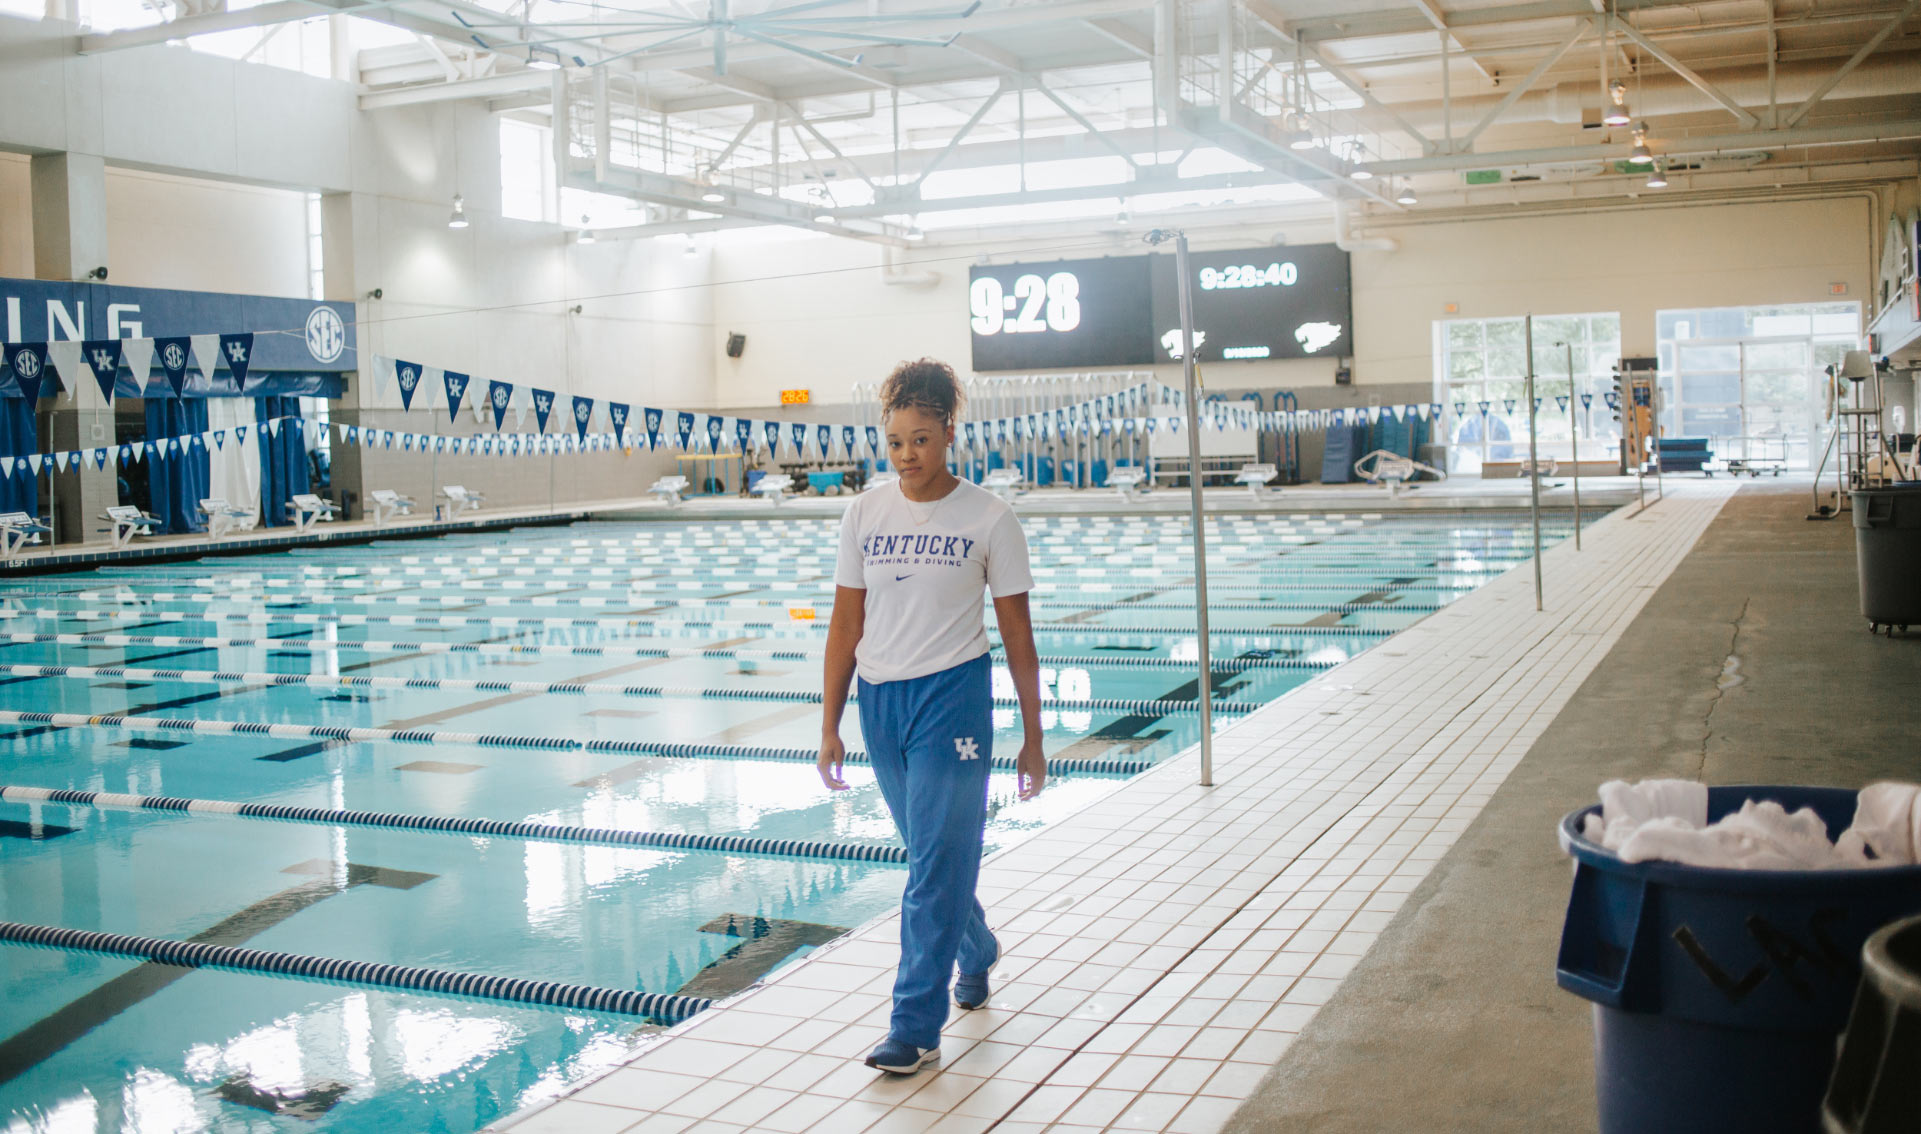 A photo of Jaida, dressed in a white t-shirt and blue track pants, walking alongside the pool.